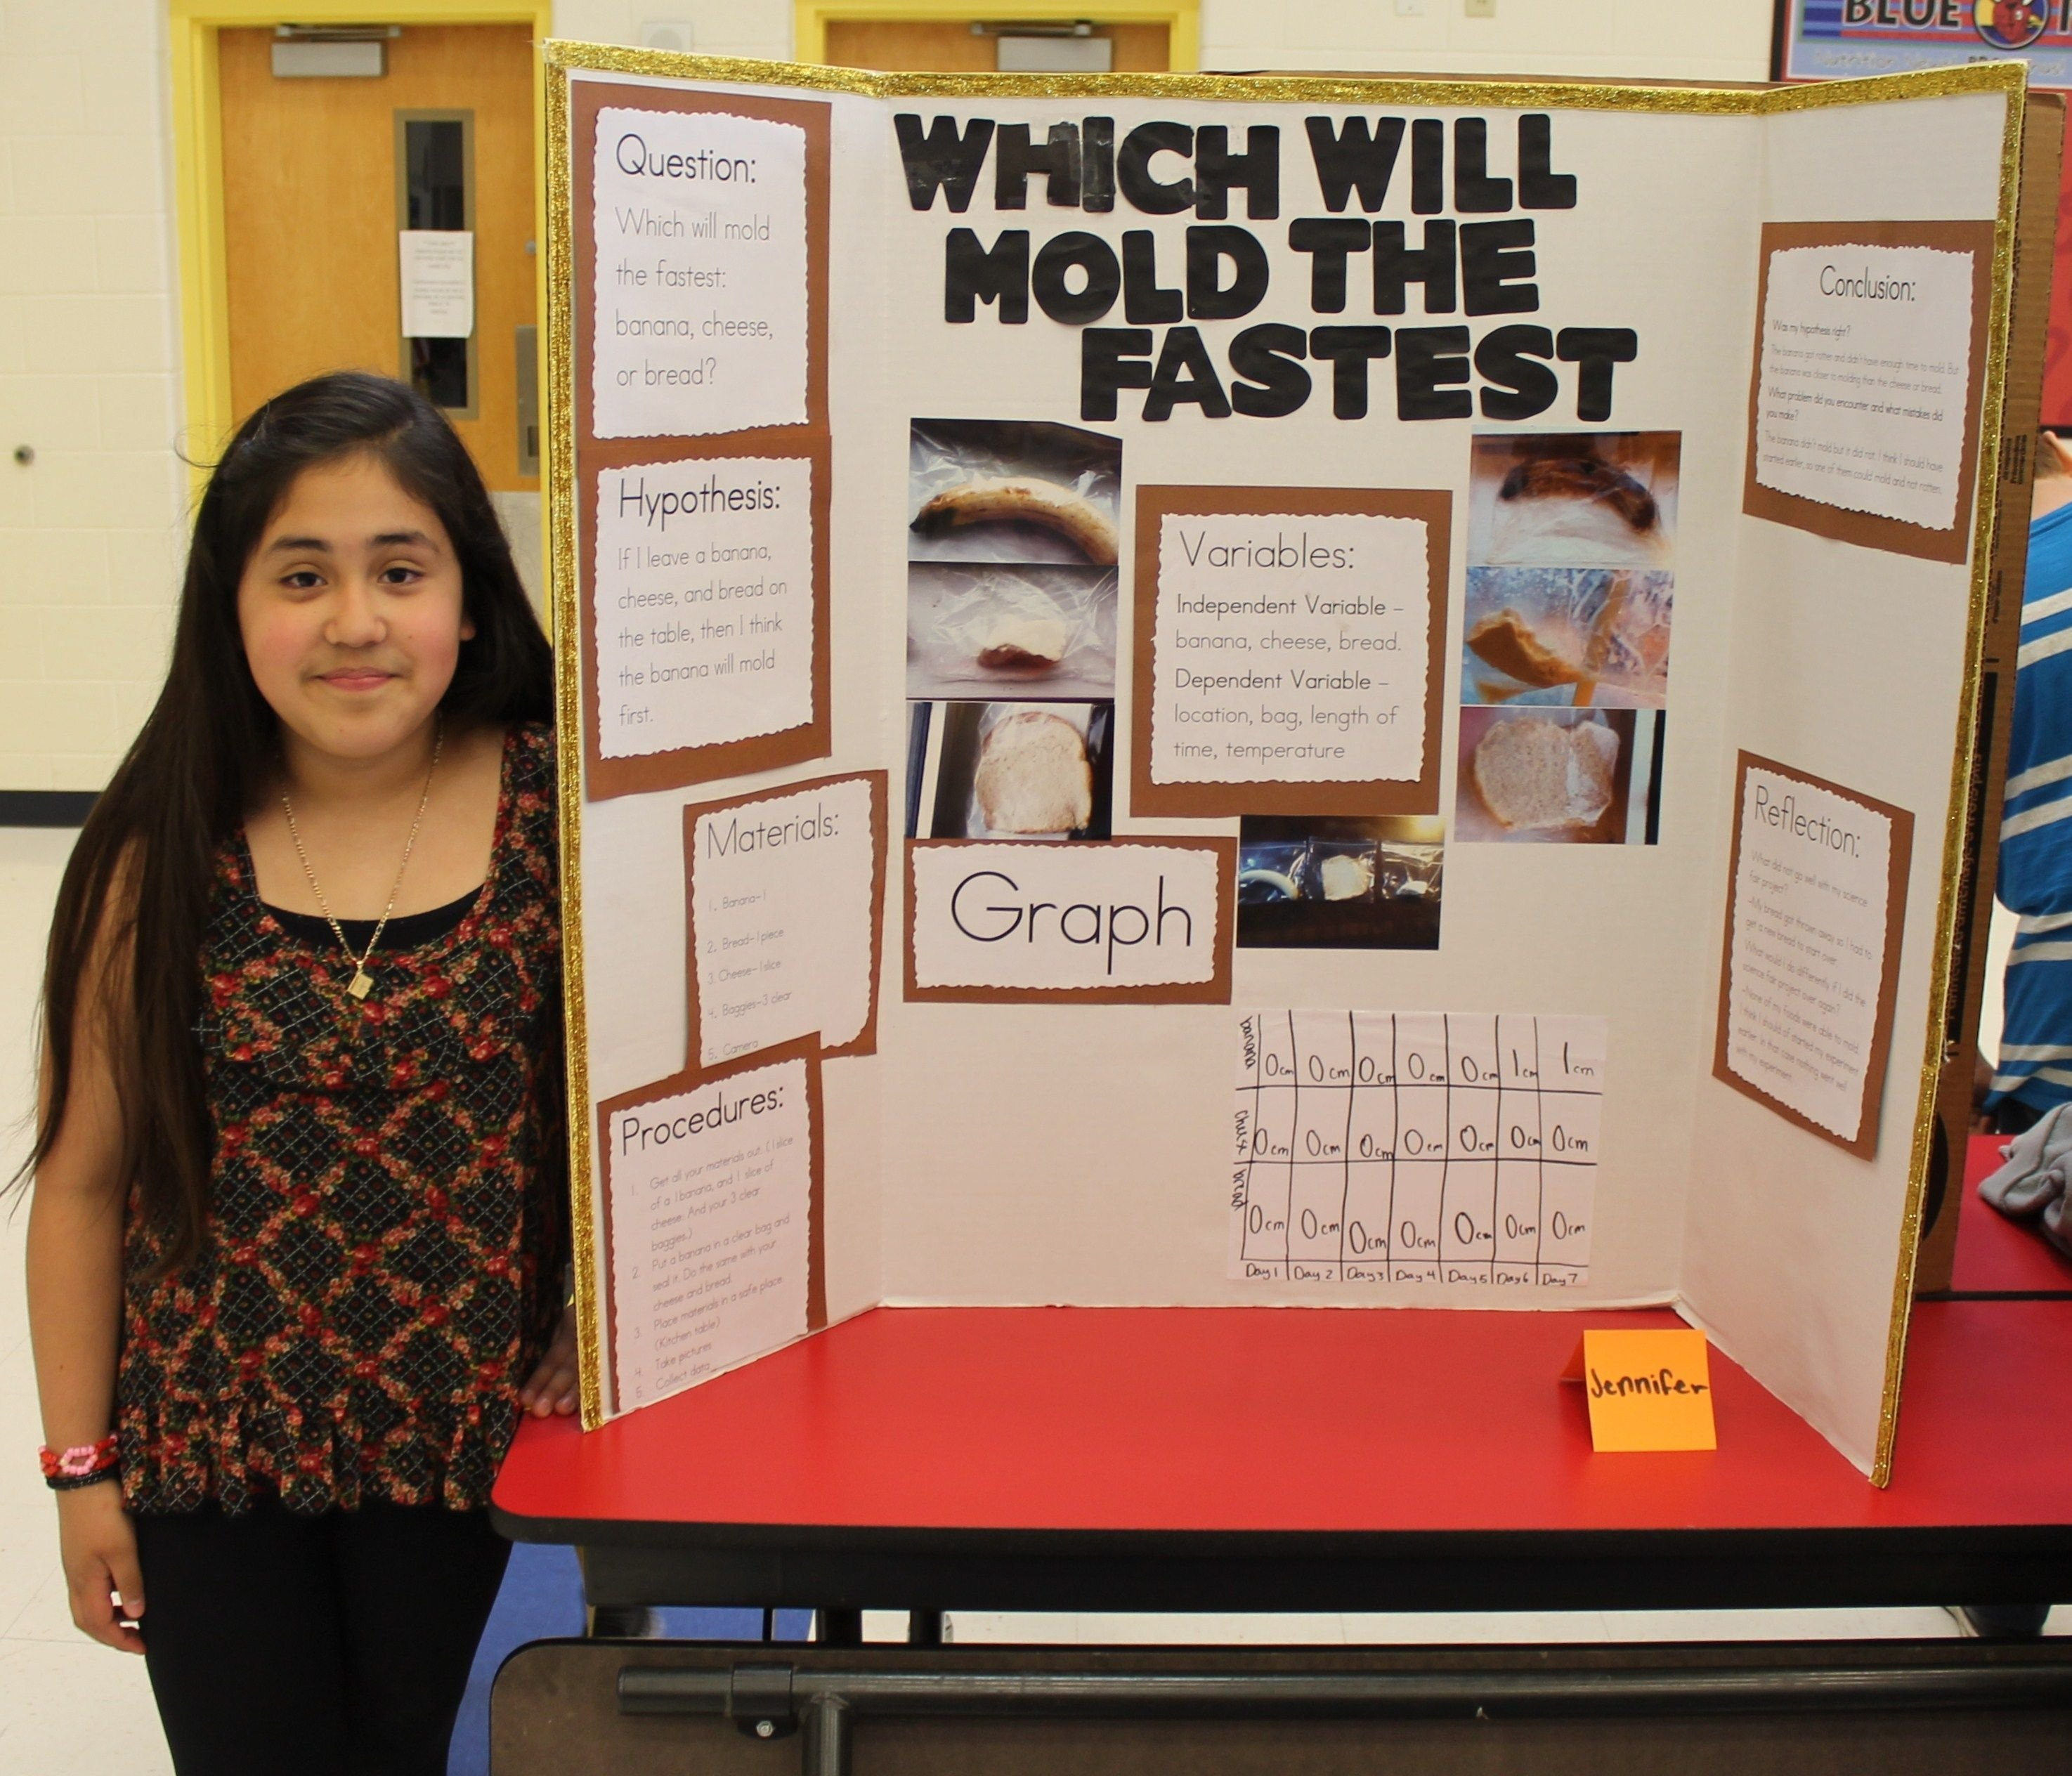 10 Fantastic Science Fair Project Ideas For 3Rd Graders easy science fair projects for 3rd grade idea google search 2020